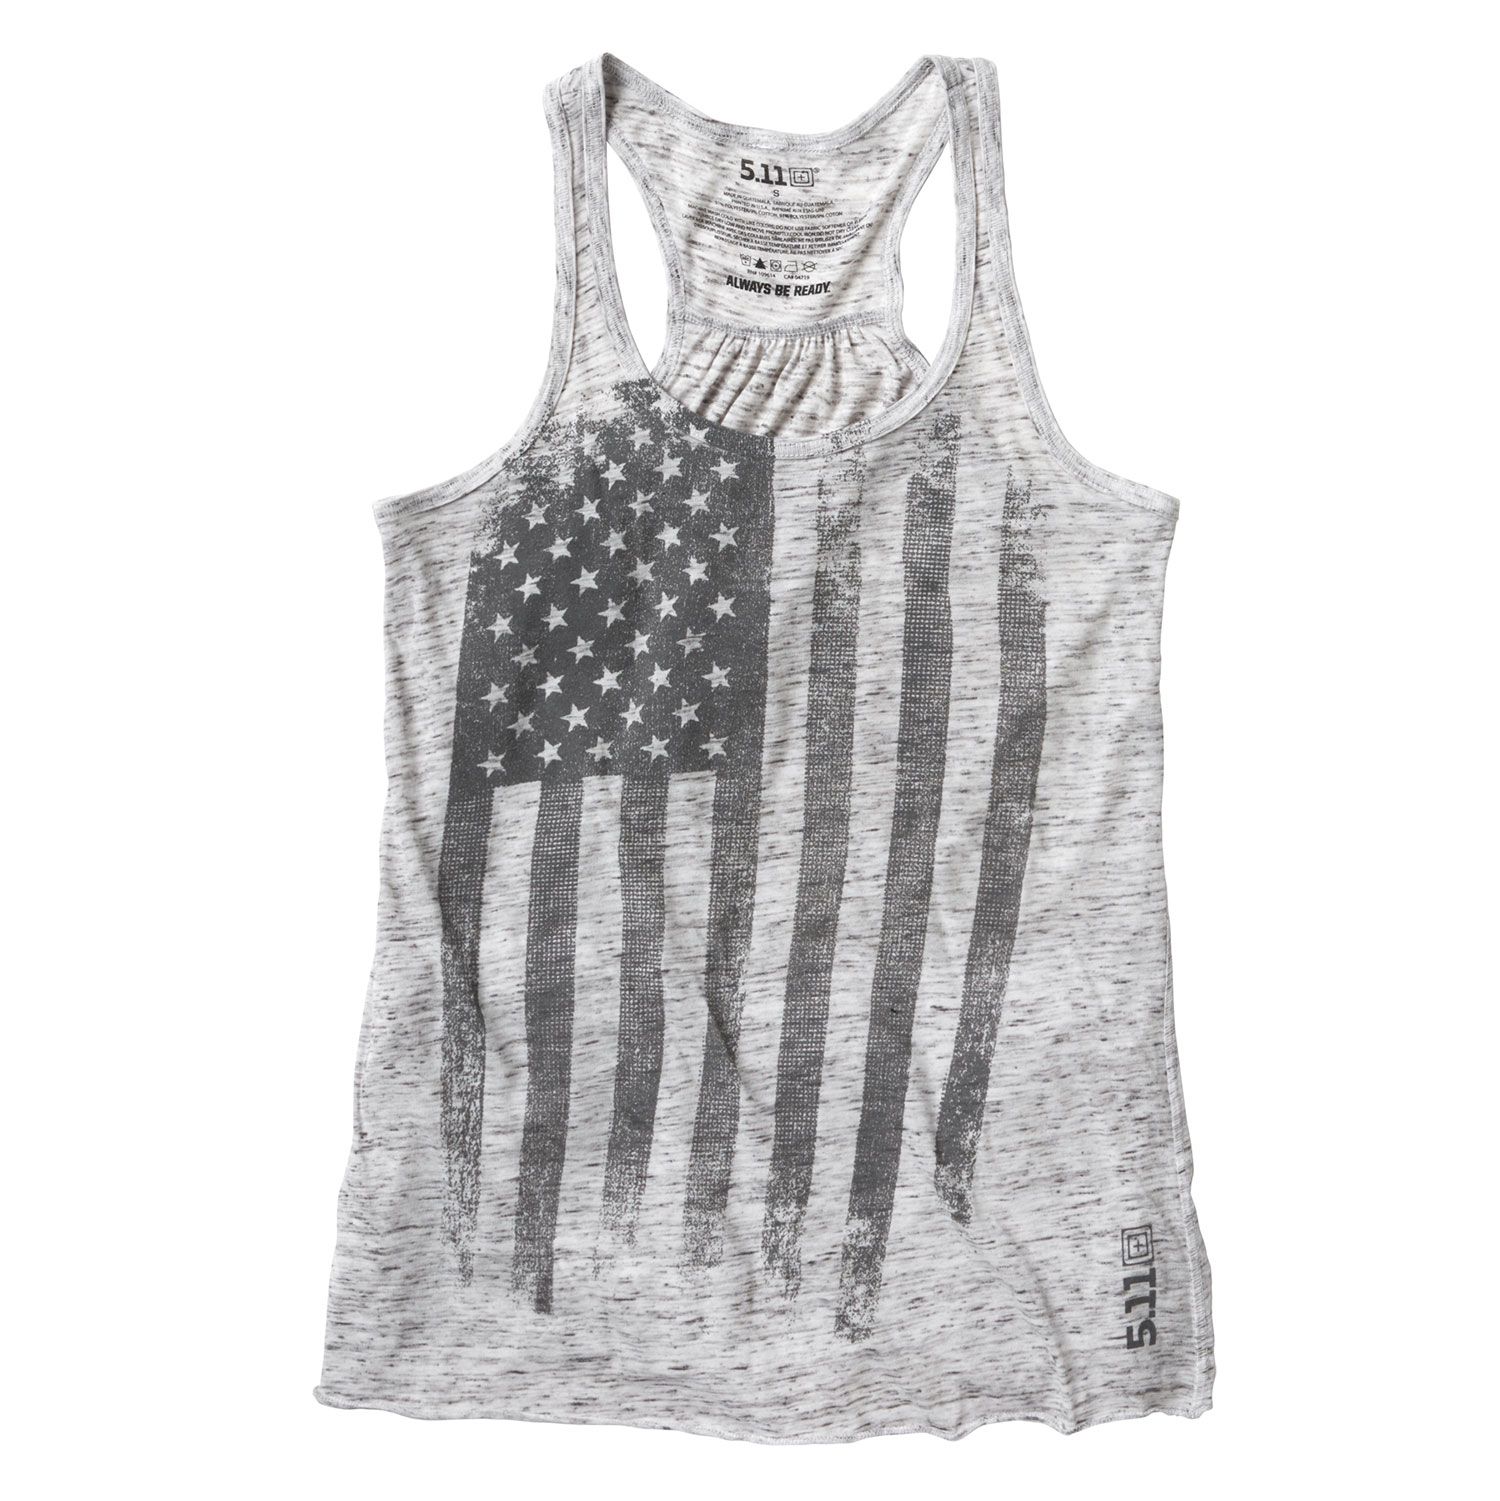 5.11 Tactical Women's Dusted Glory Tank